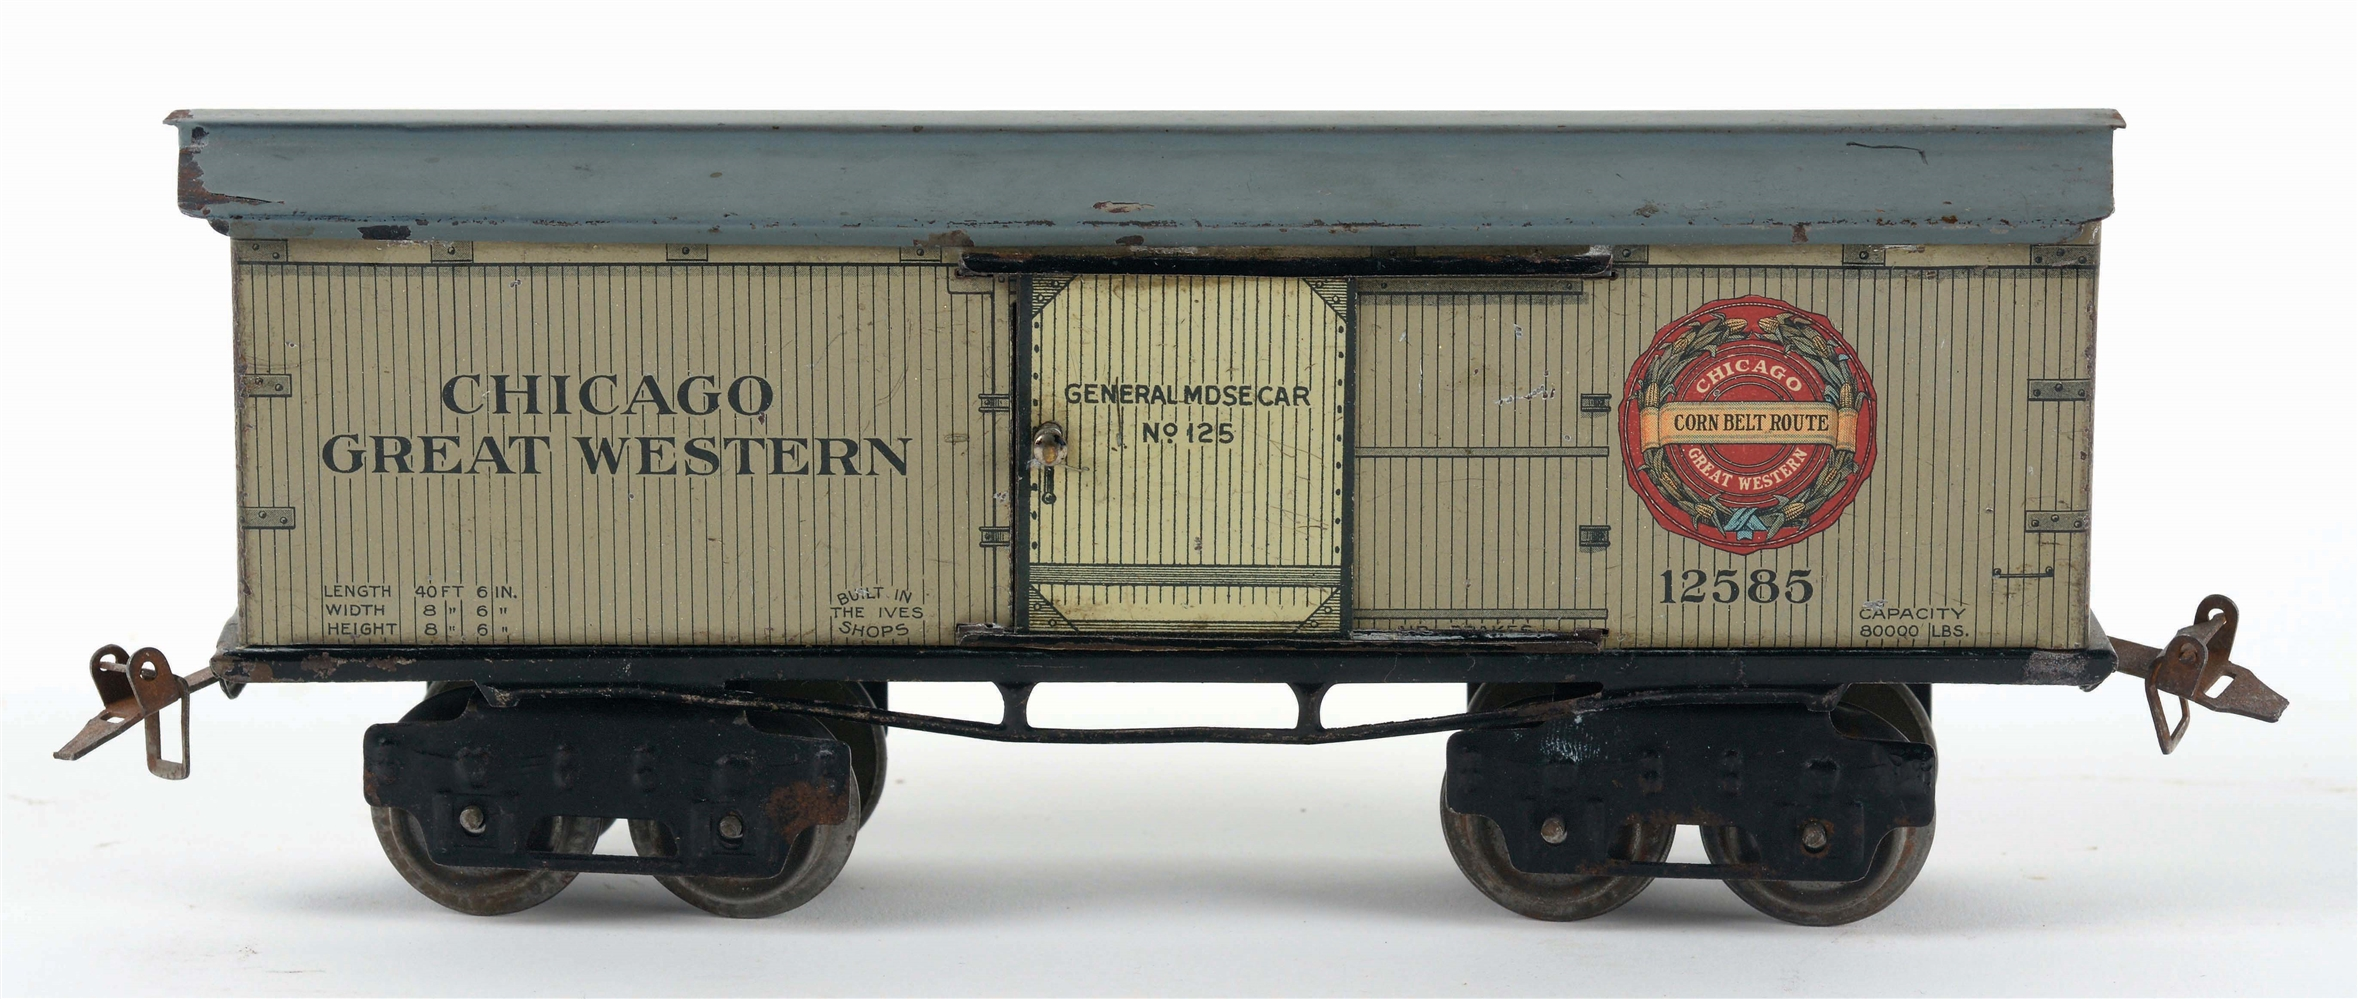 IVES O-GAUGE CHICAGO GREAT WESTERN BOX CAR.